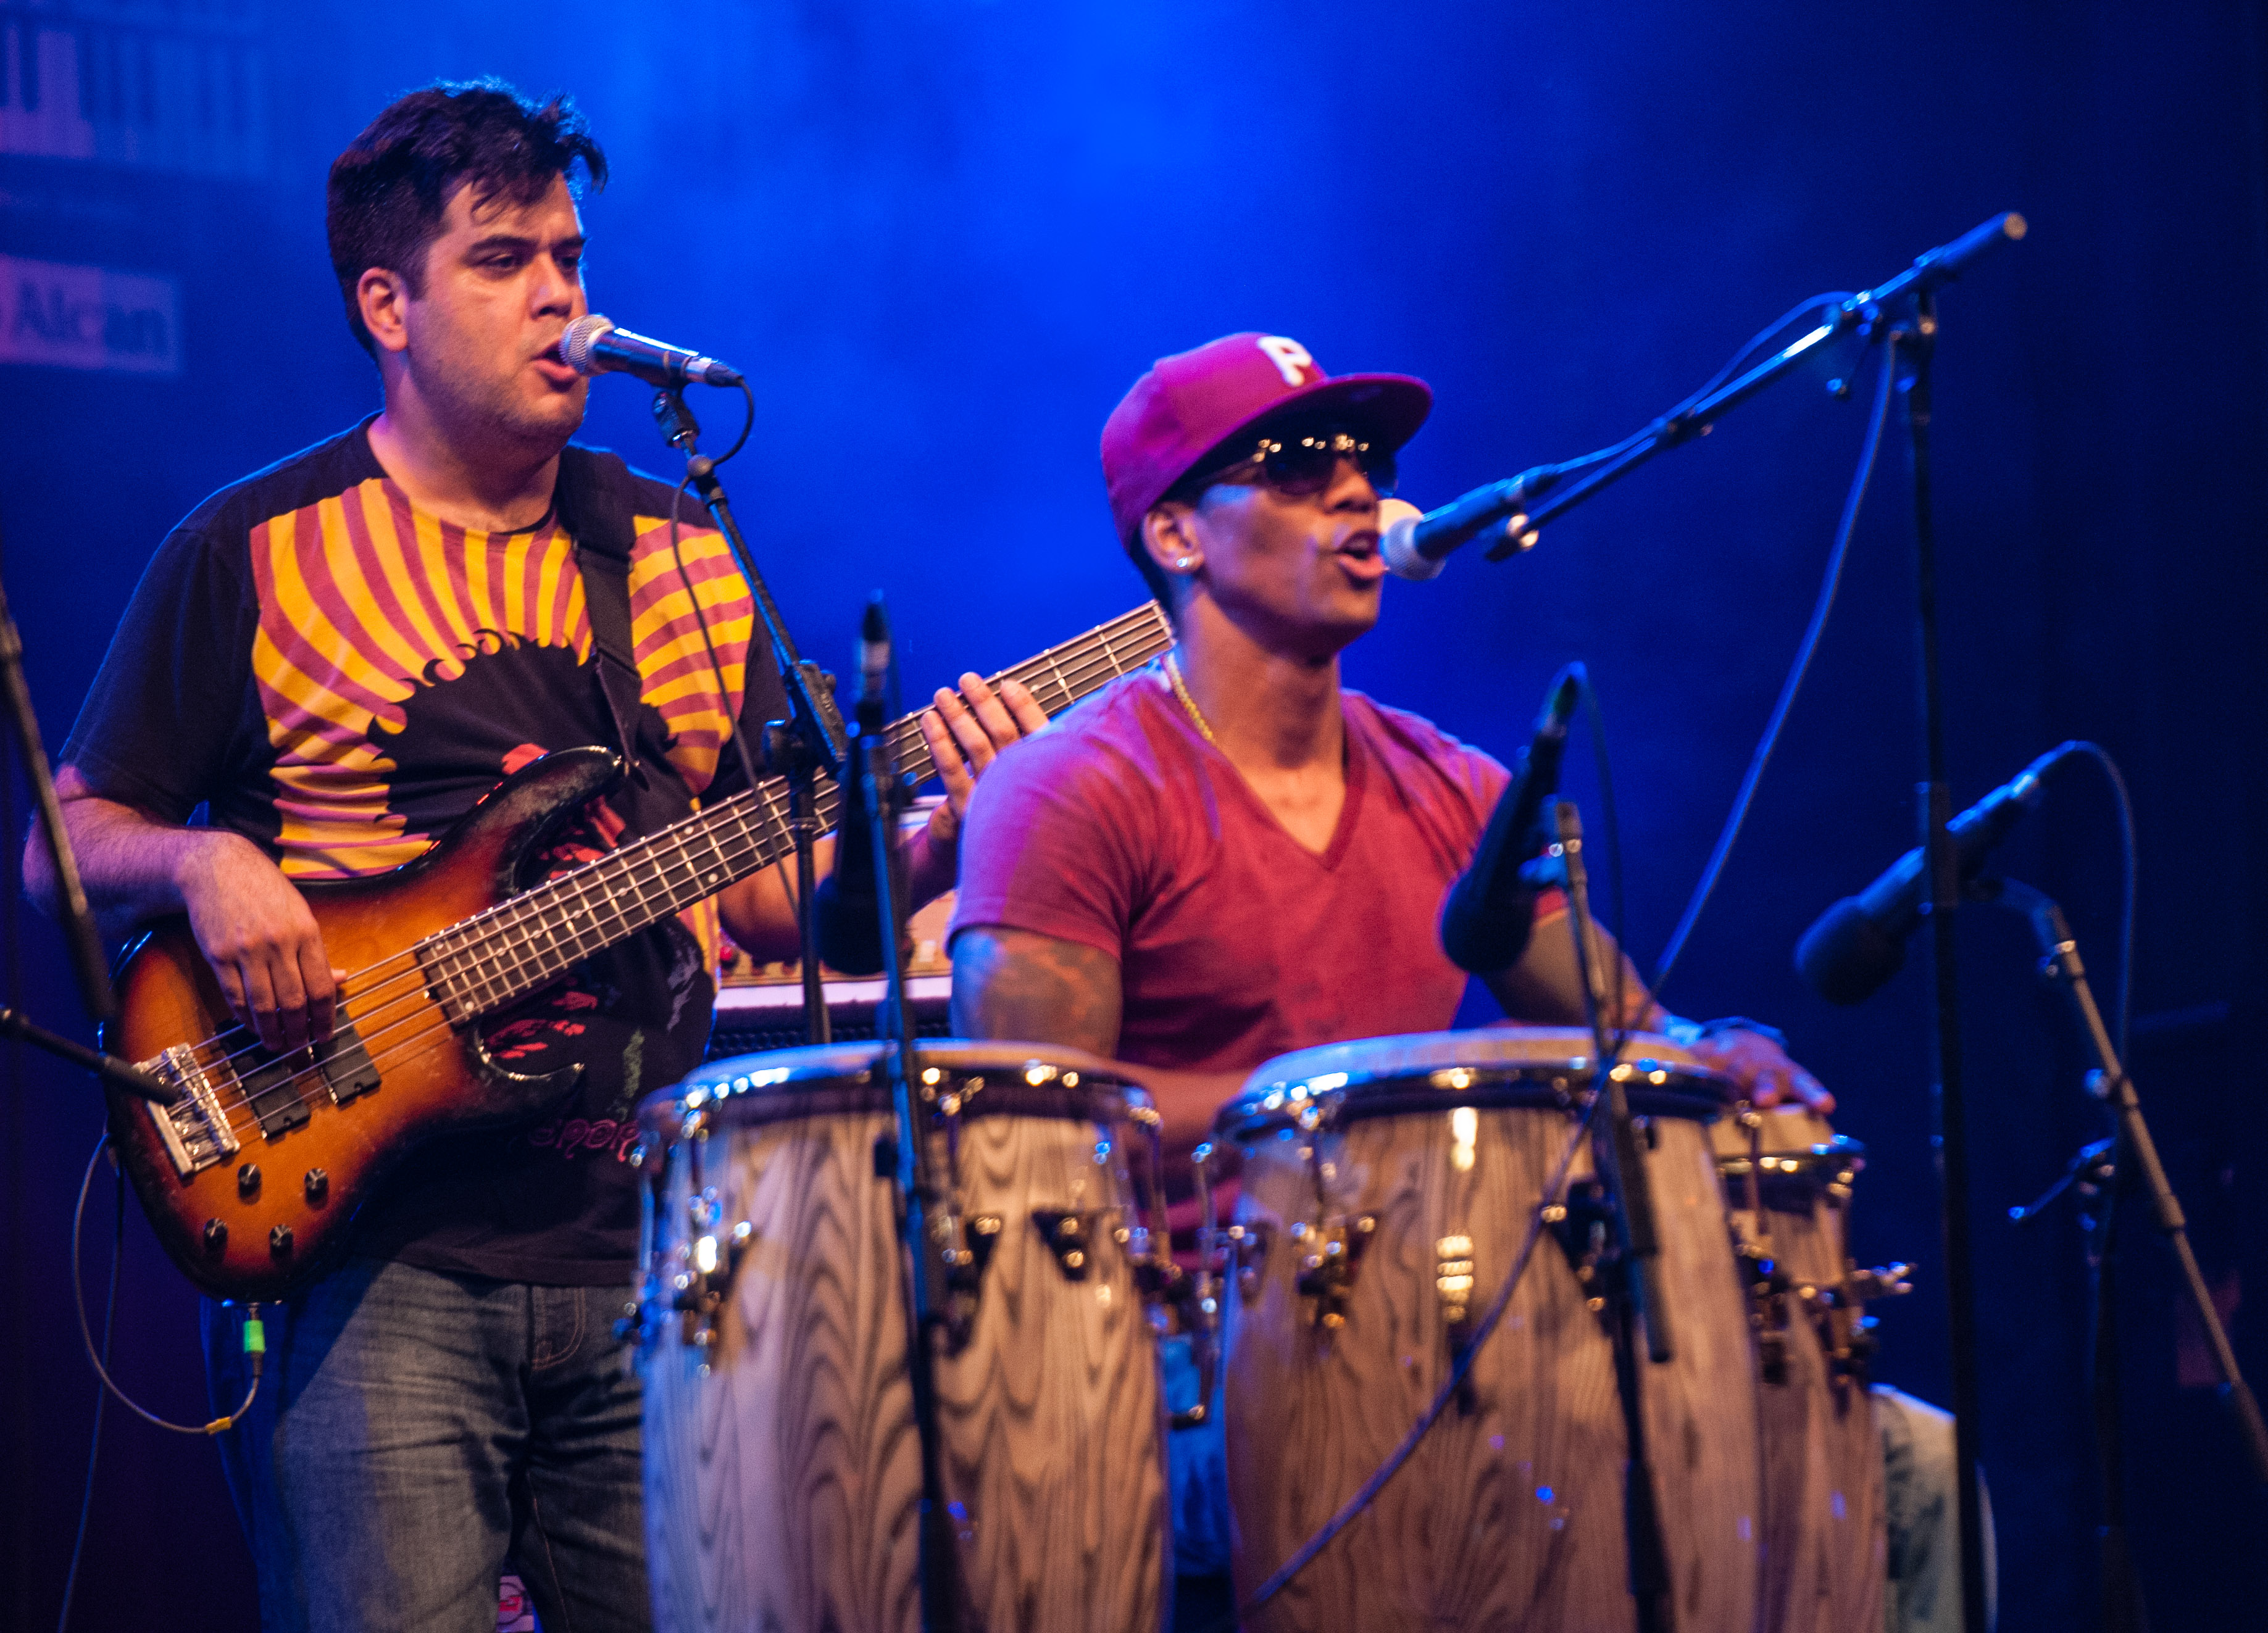 Alvaro benavides and pedrito martinez at the montreal international jazz festival 2013